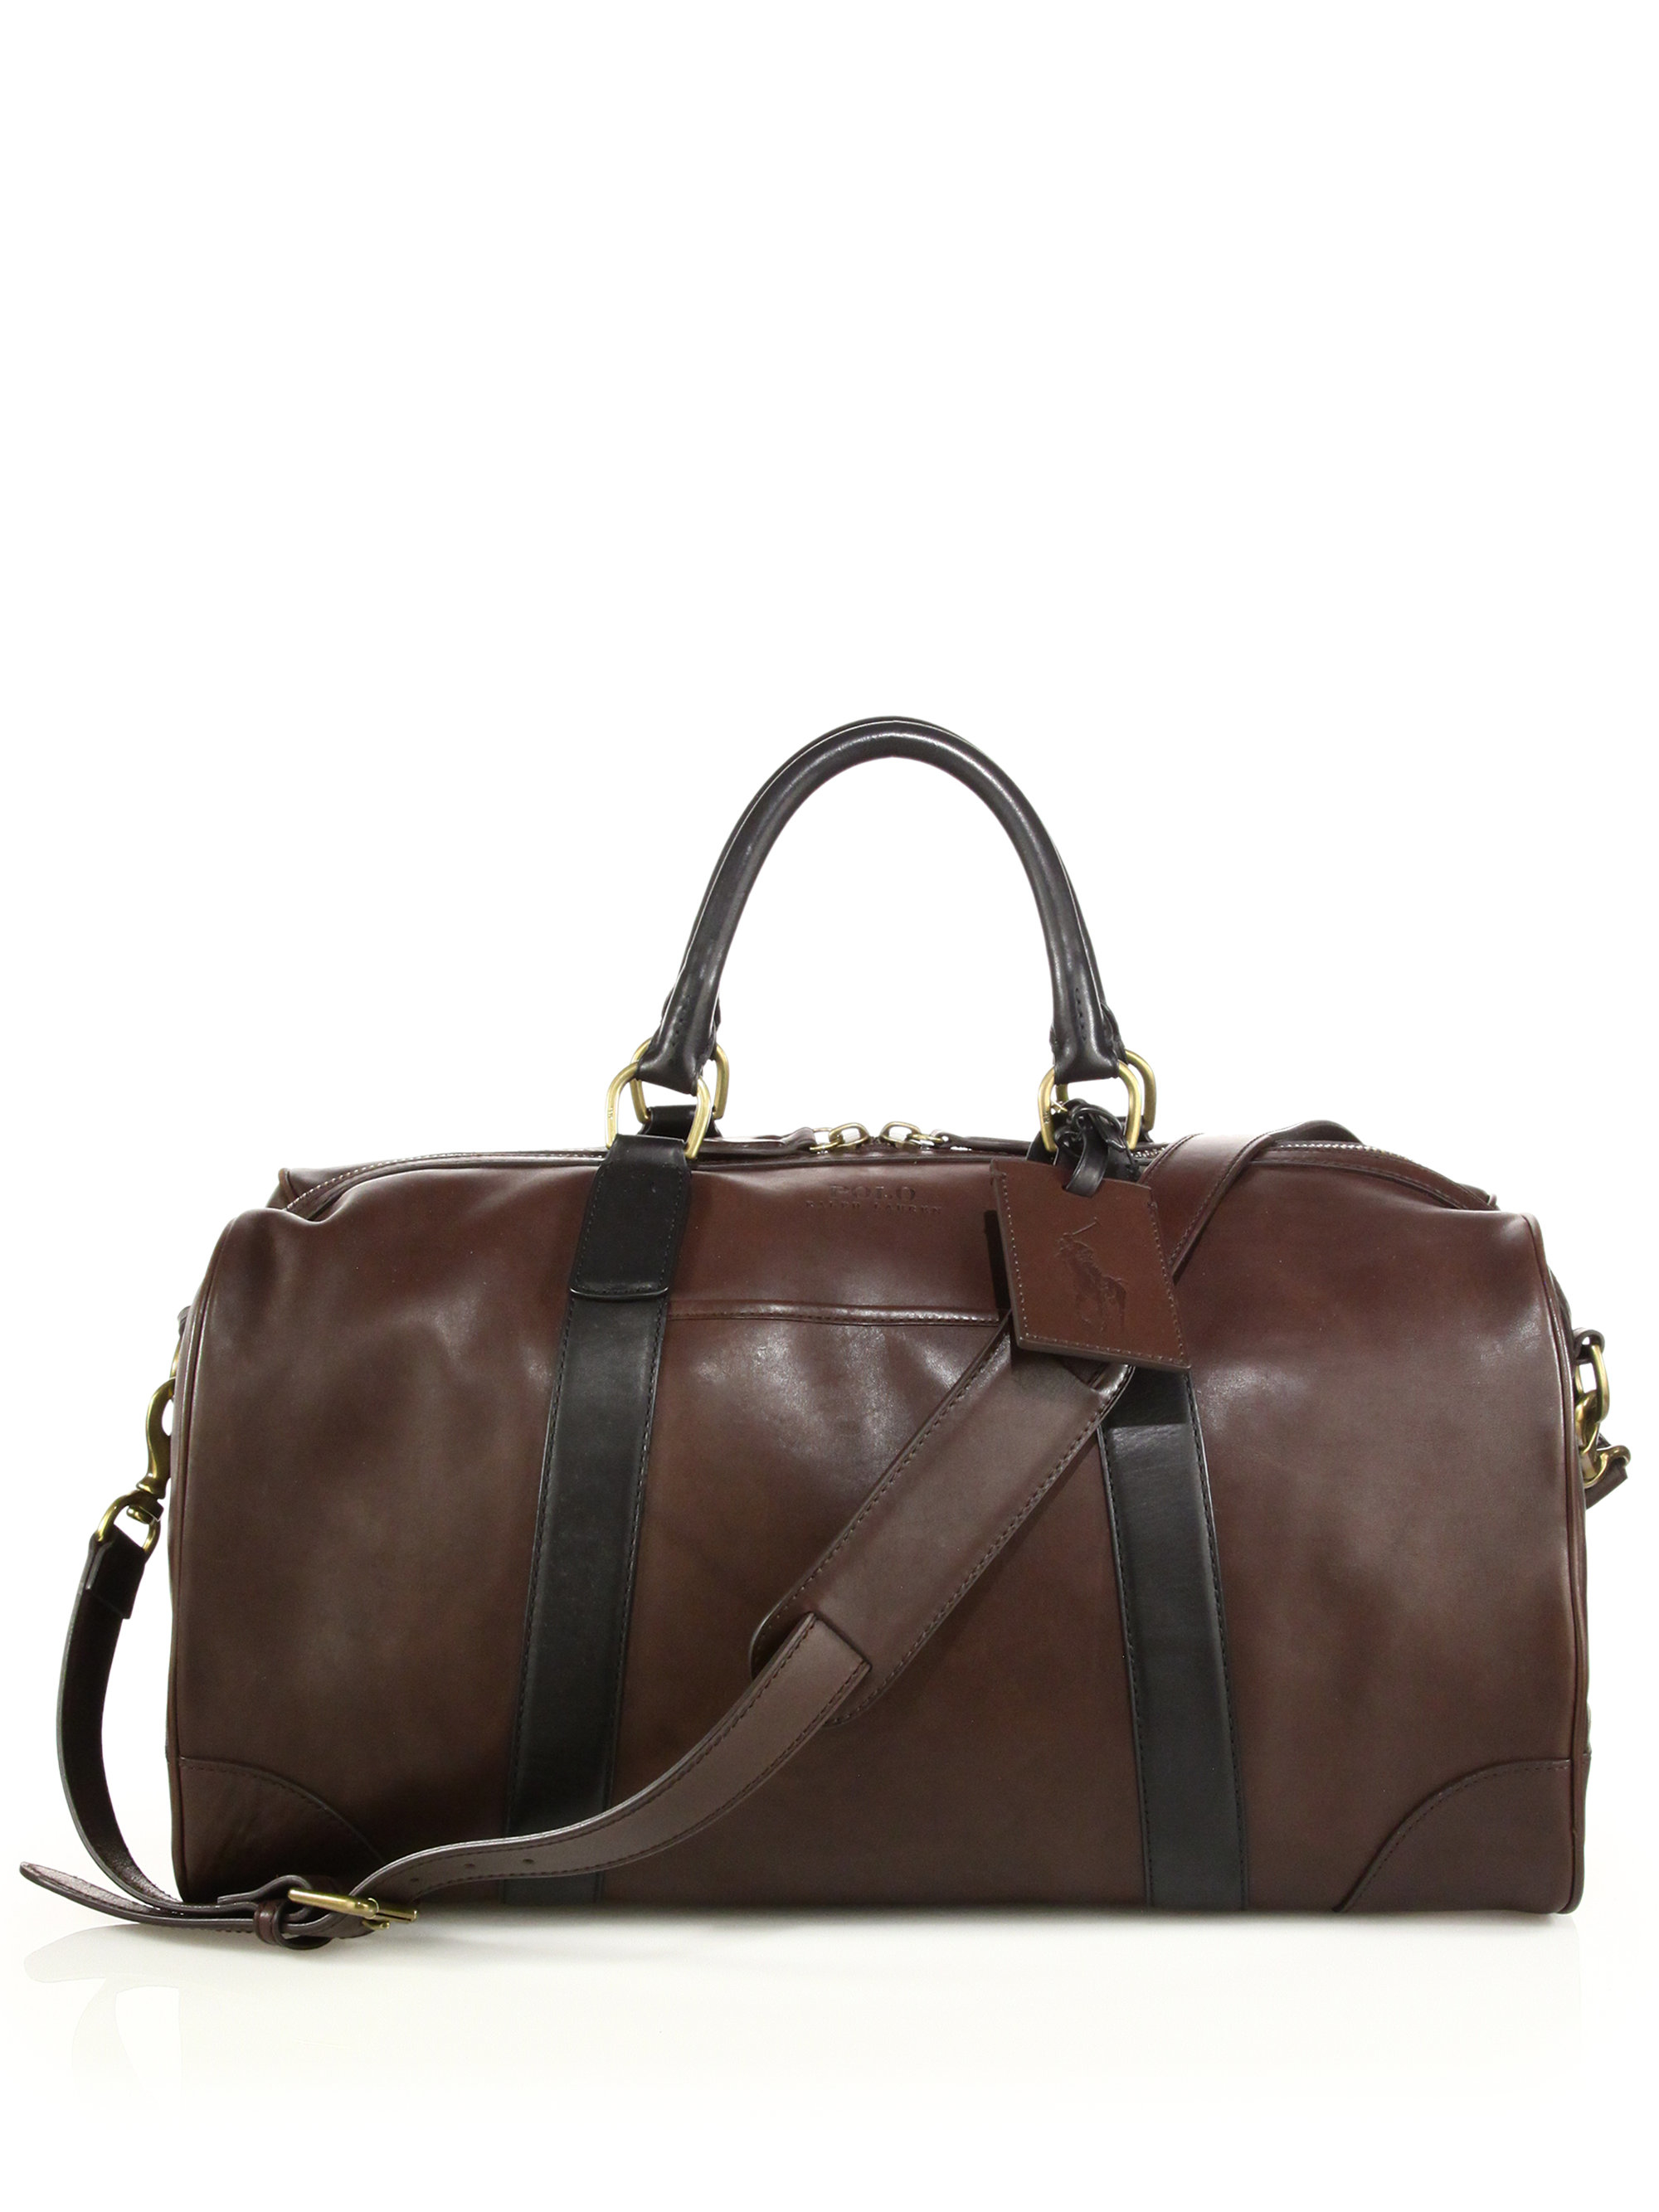 polo ralph lauren leather duffel bag in brown for men lyst